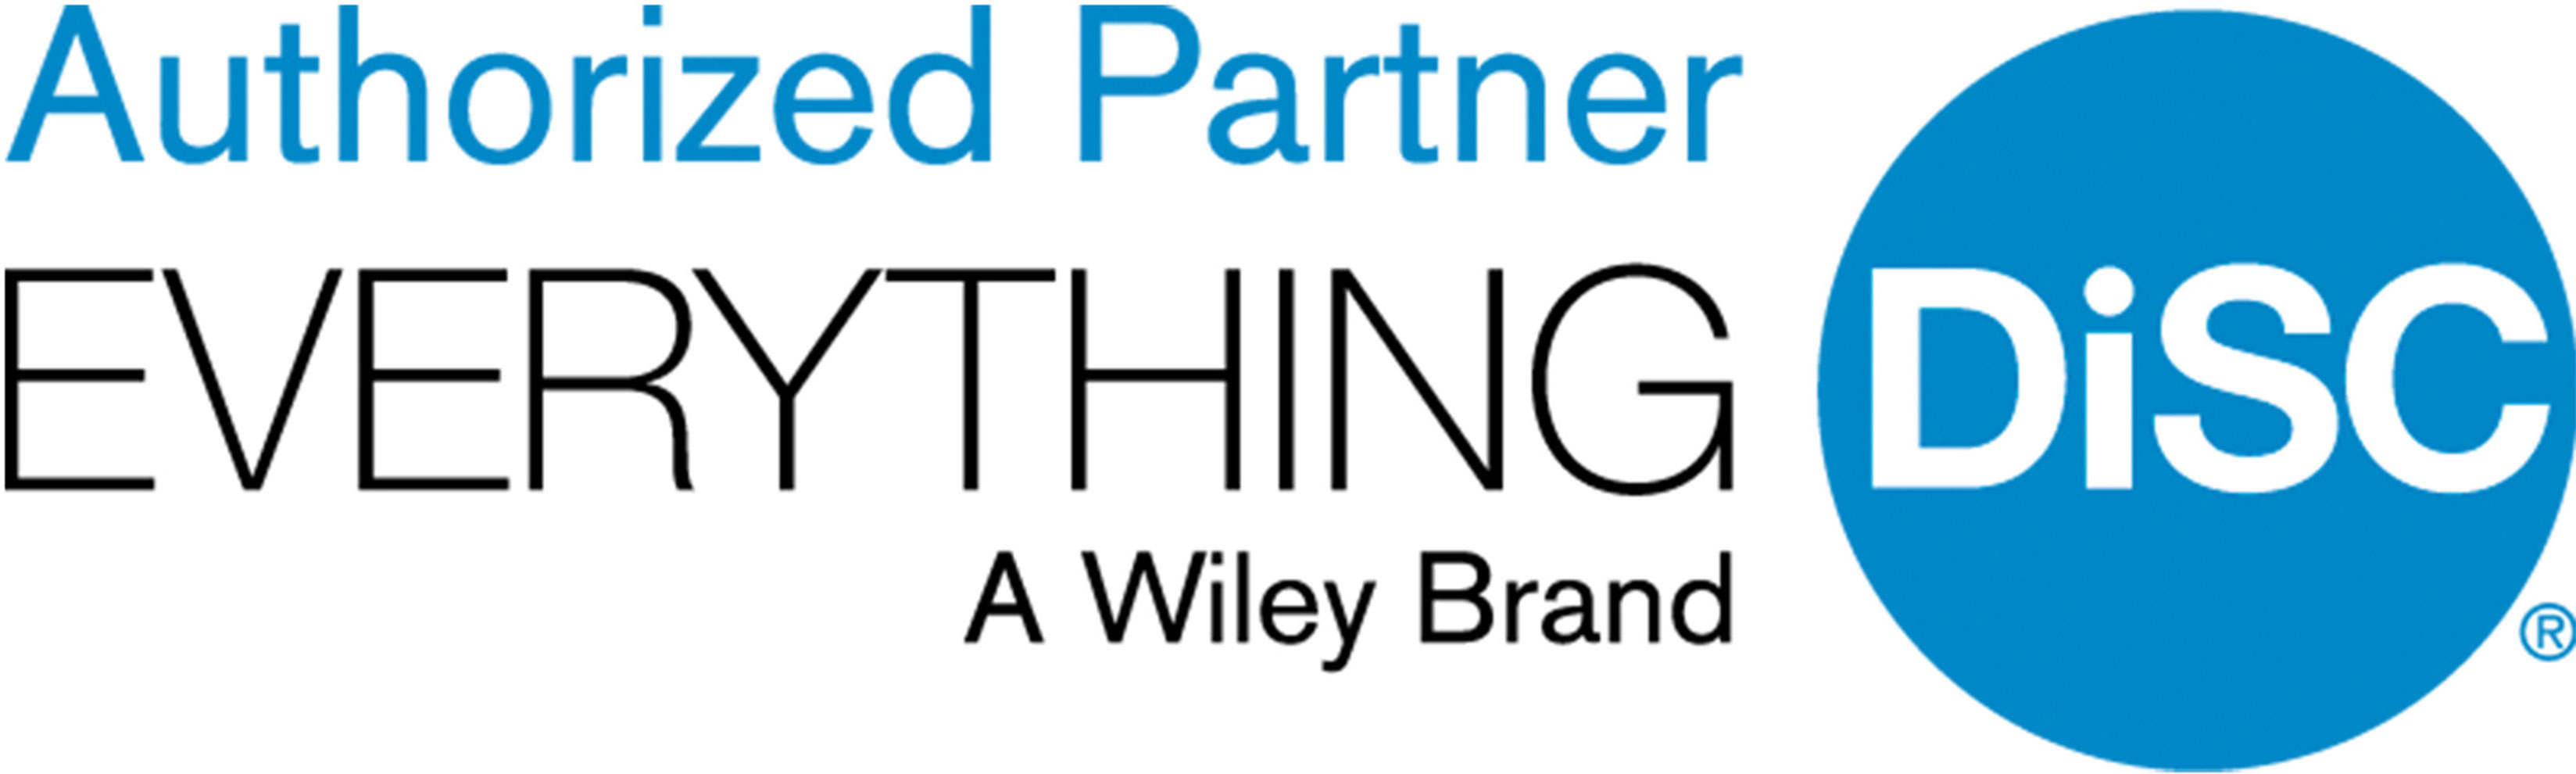 Everything DiSC - Authorized Partner